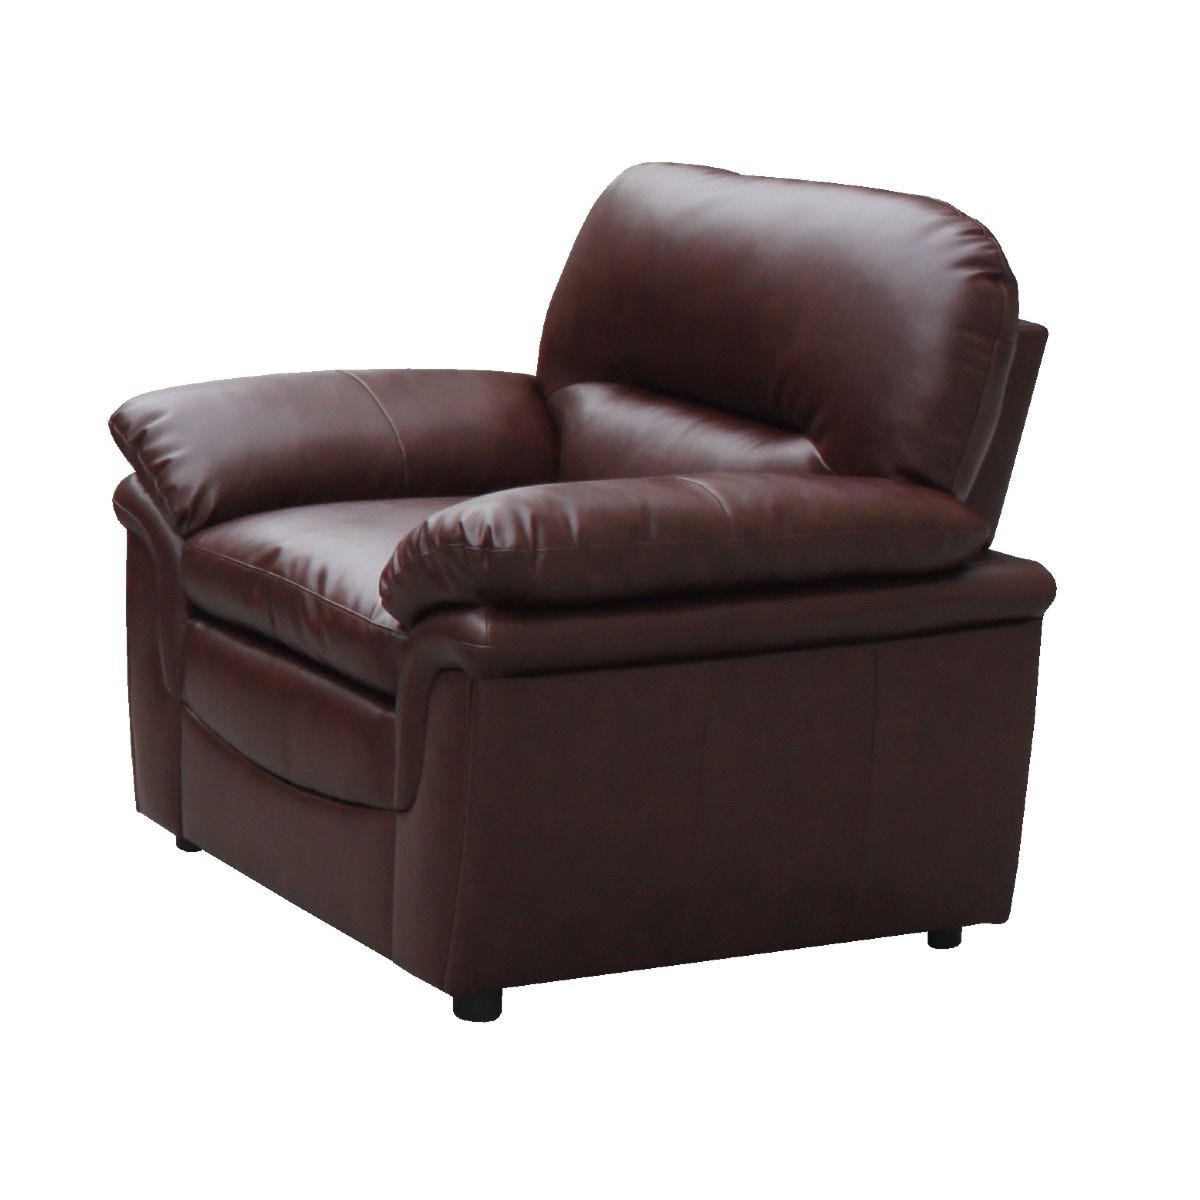 Filton Bonded Faux Leather Armchair Brown